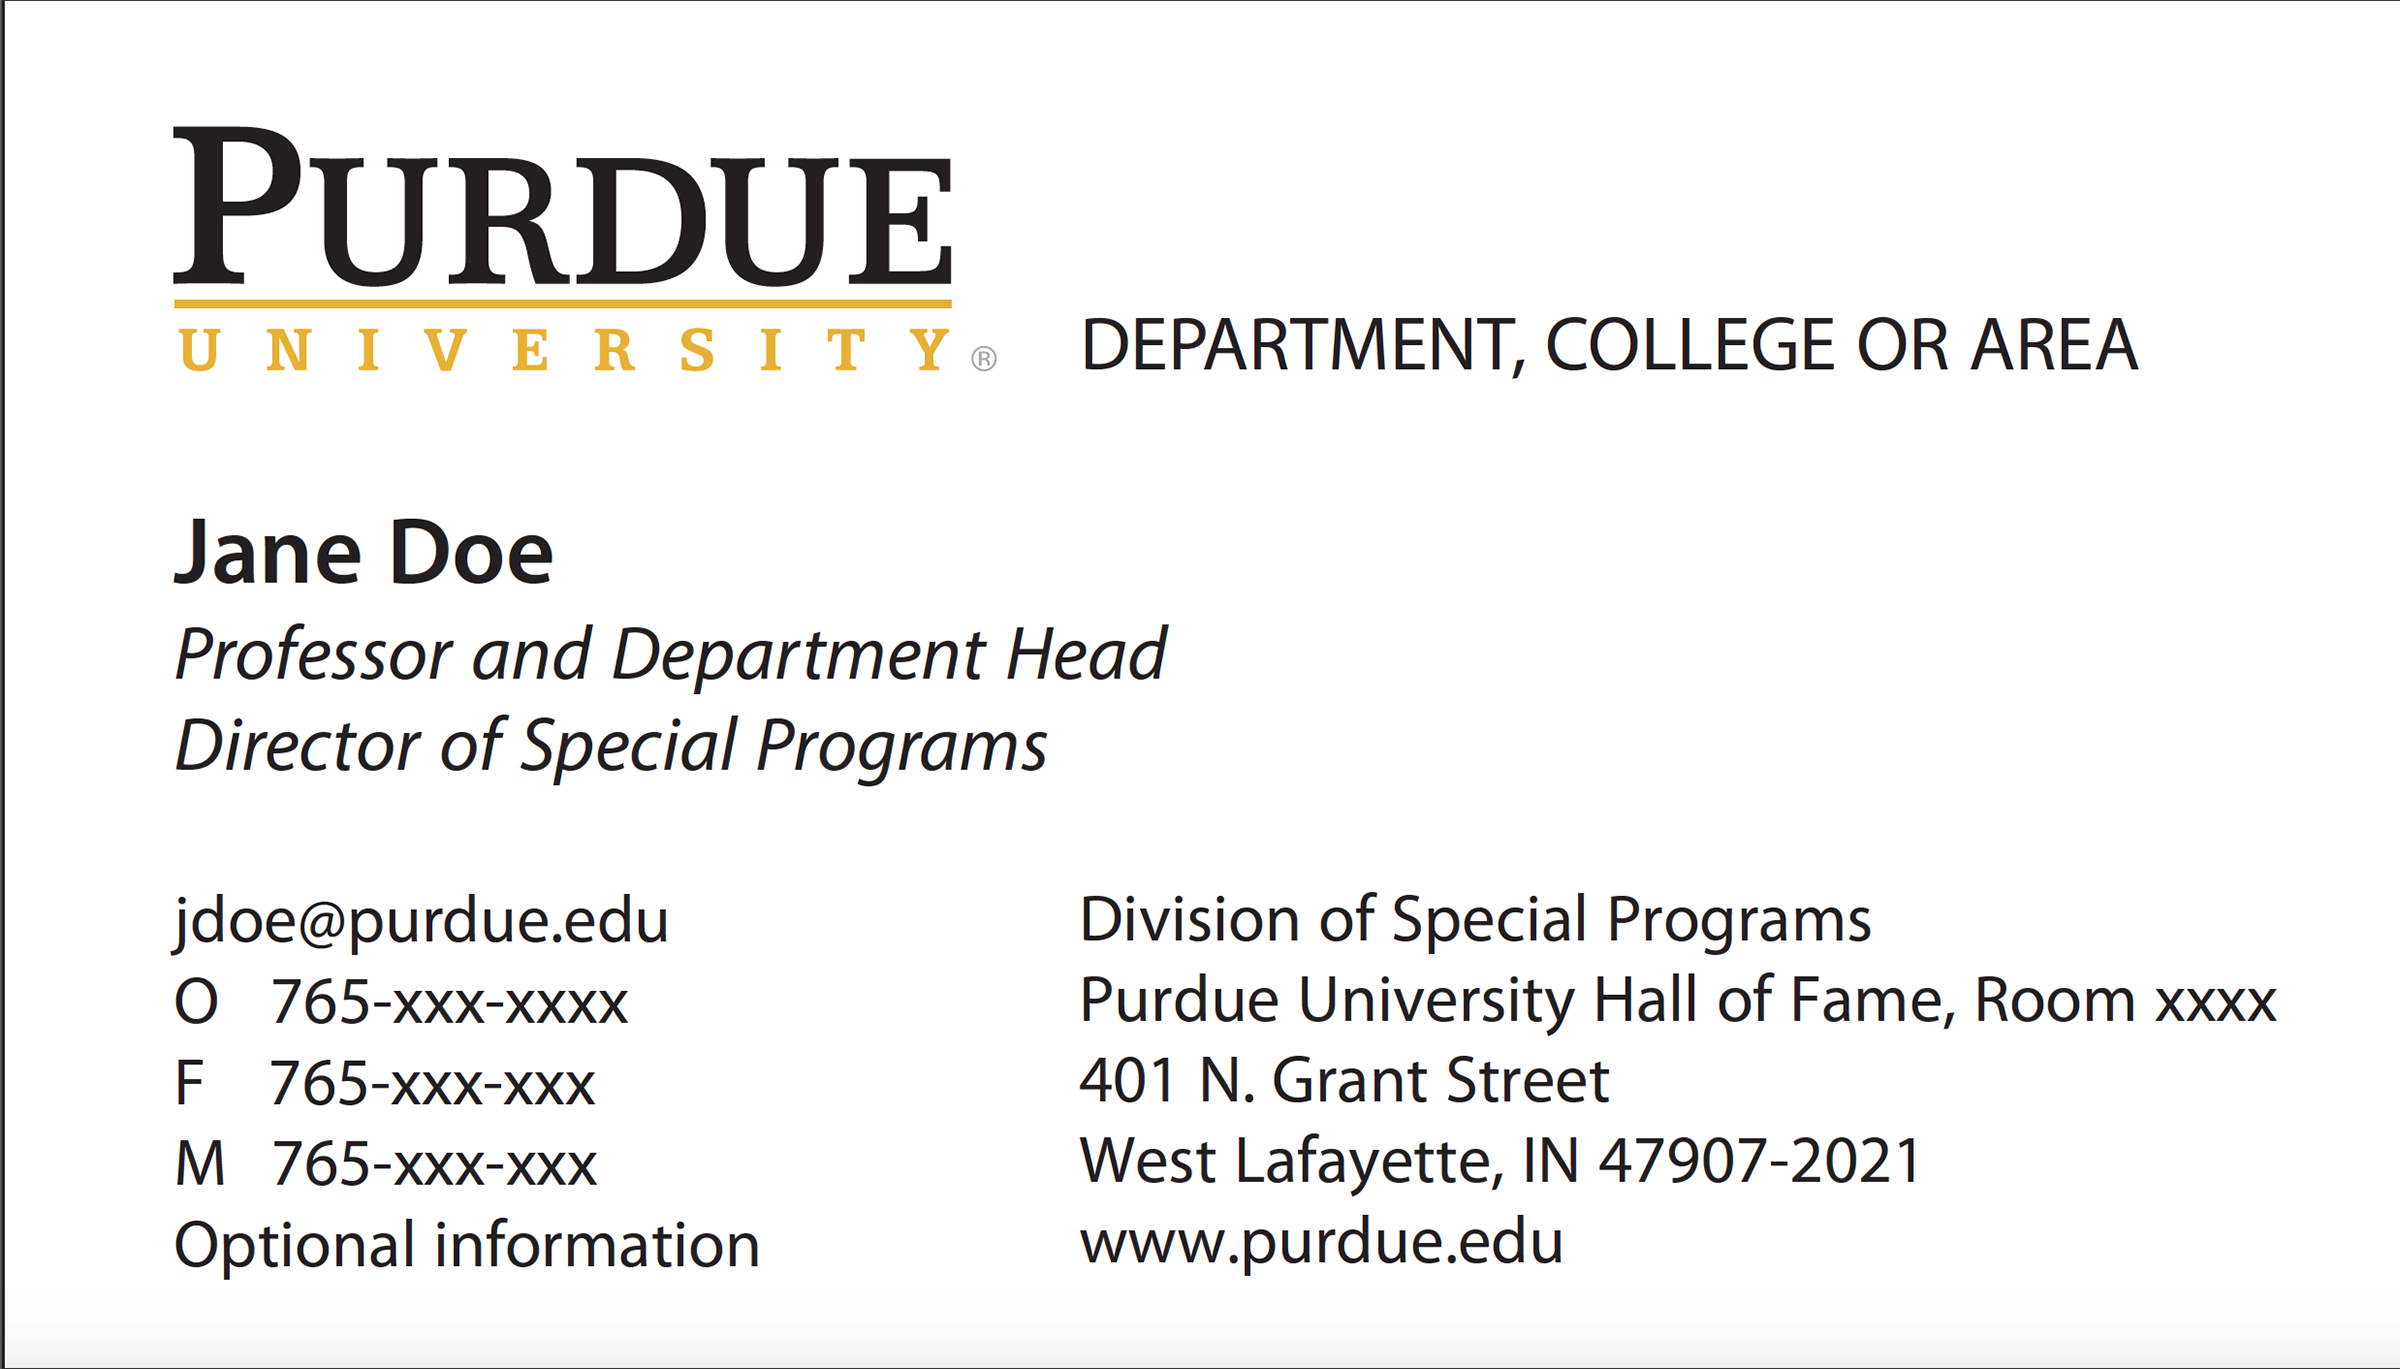 New business card template now online purdue university purdues new standard business card layout image provided download image colourmoves